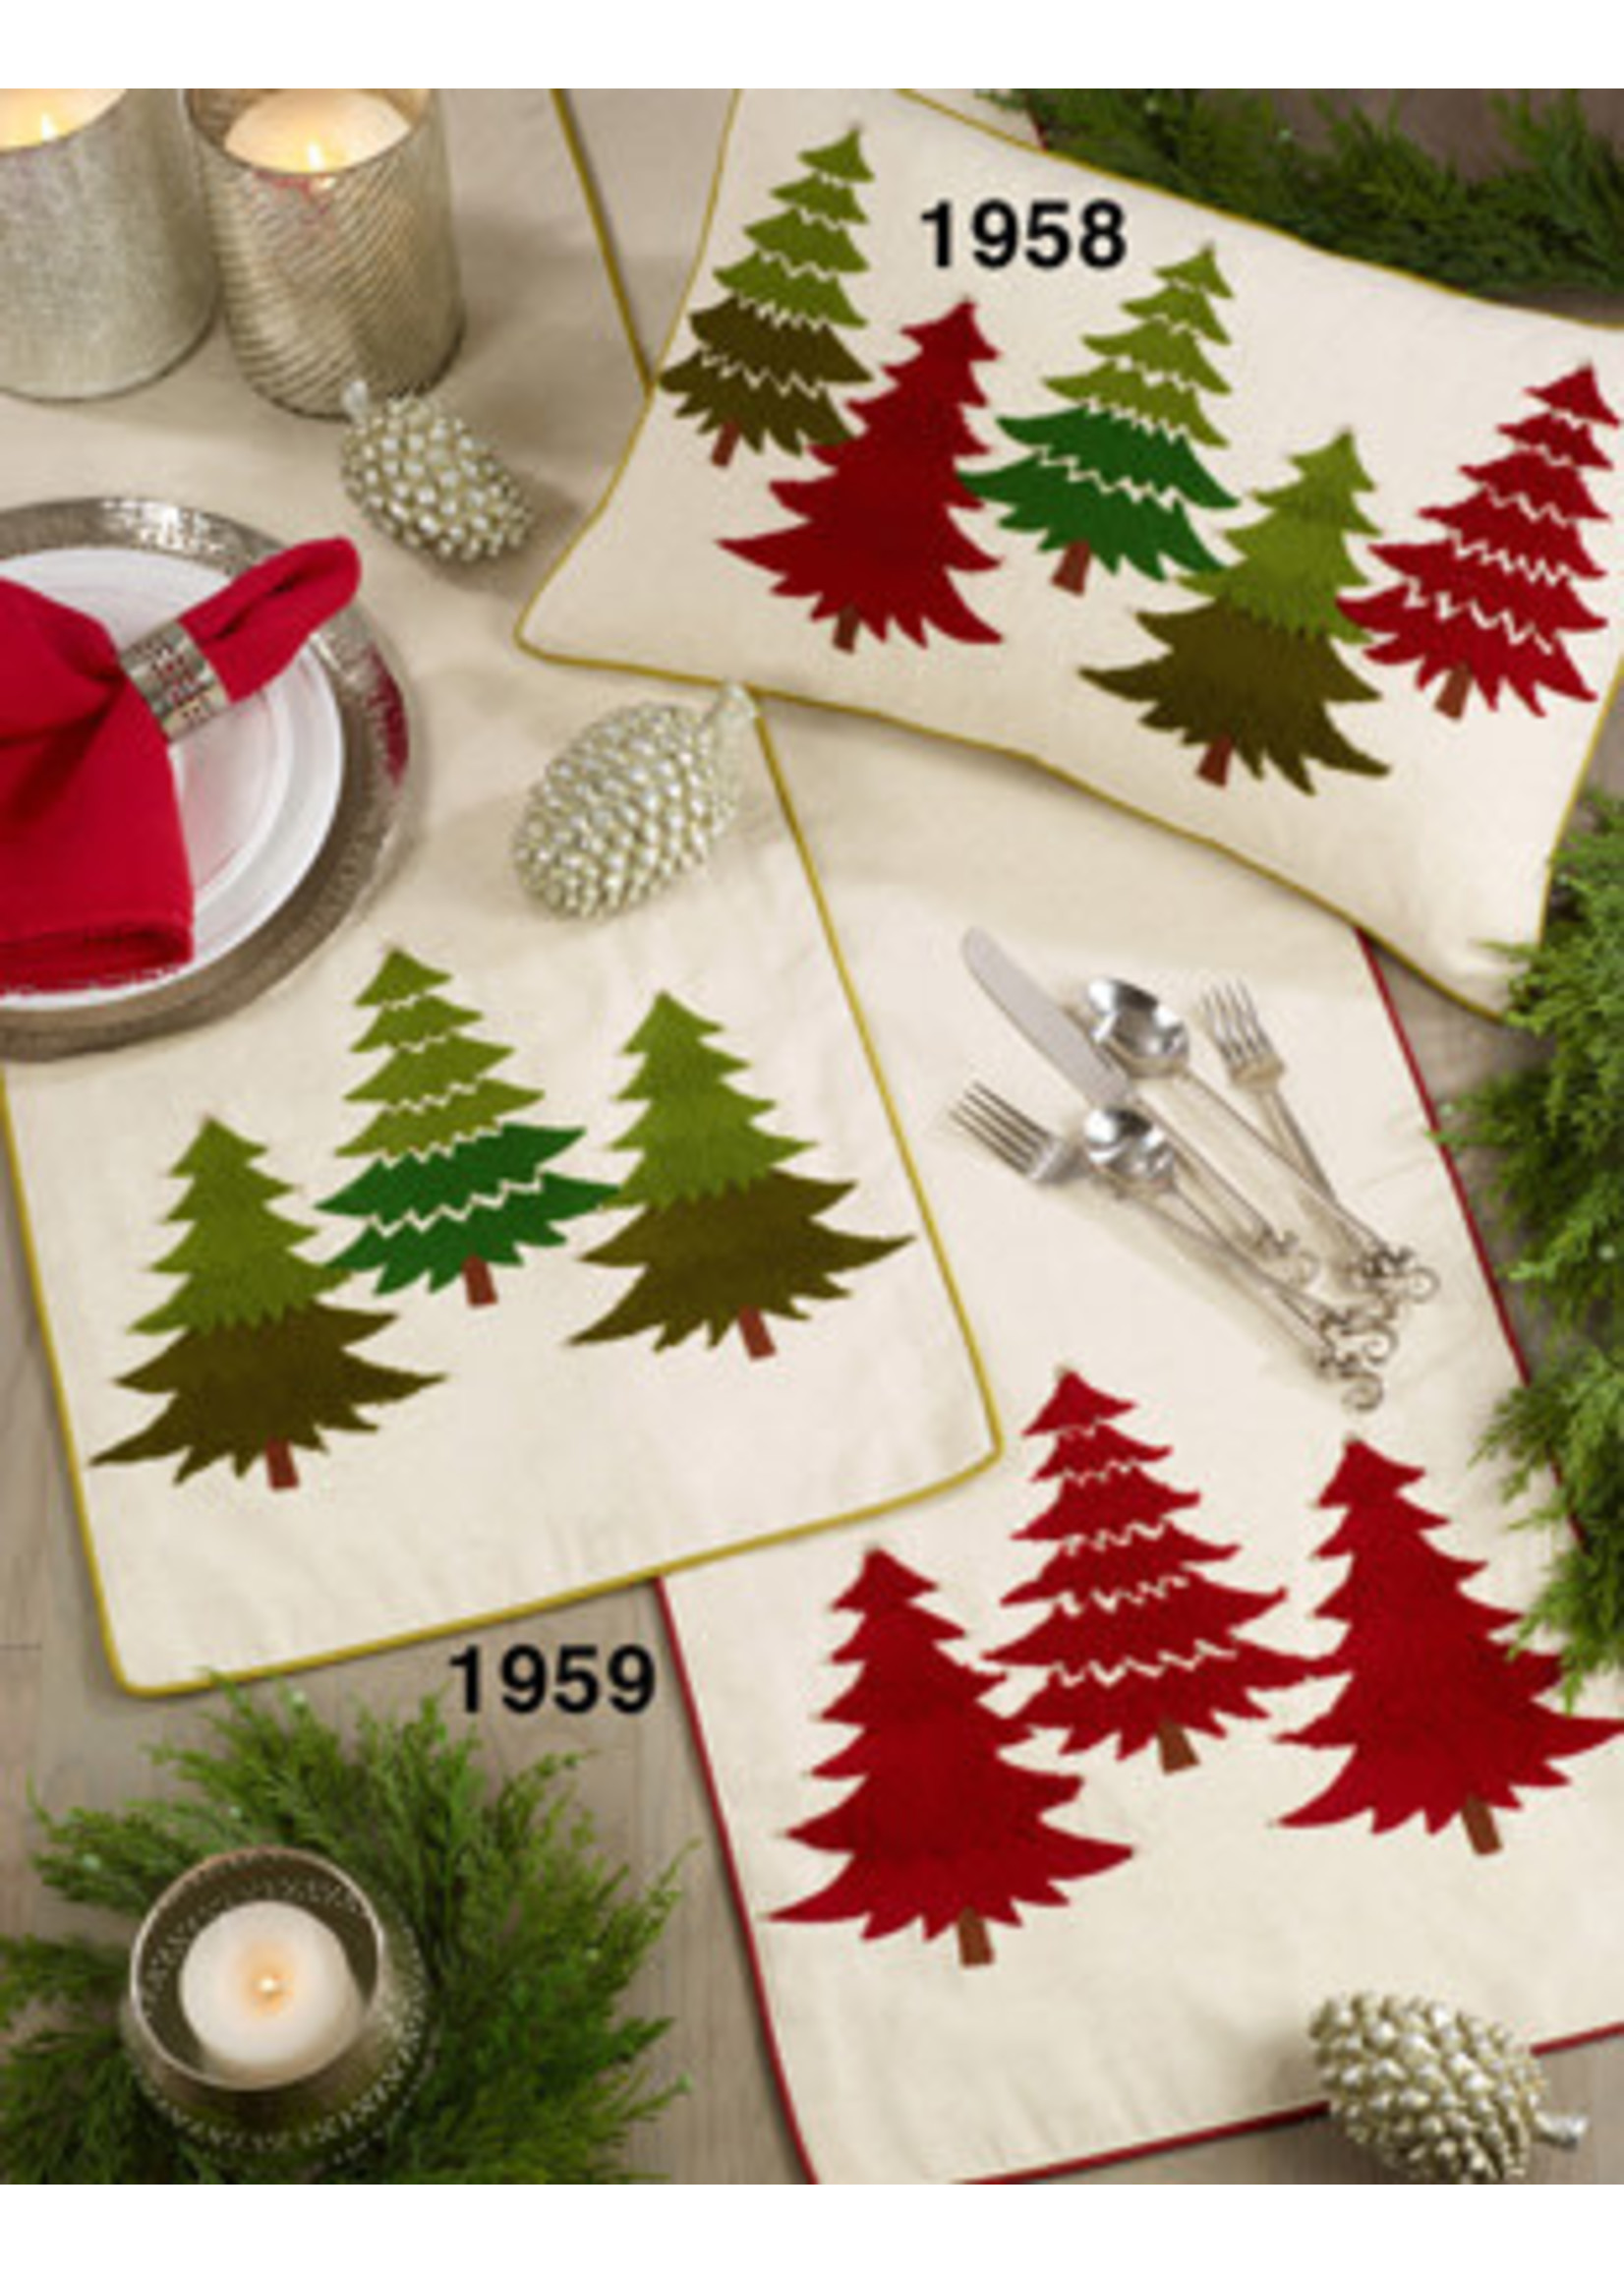 EMBROIDERED CHIRSTMAS TREE RUNNER